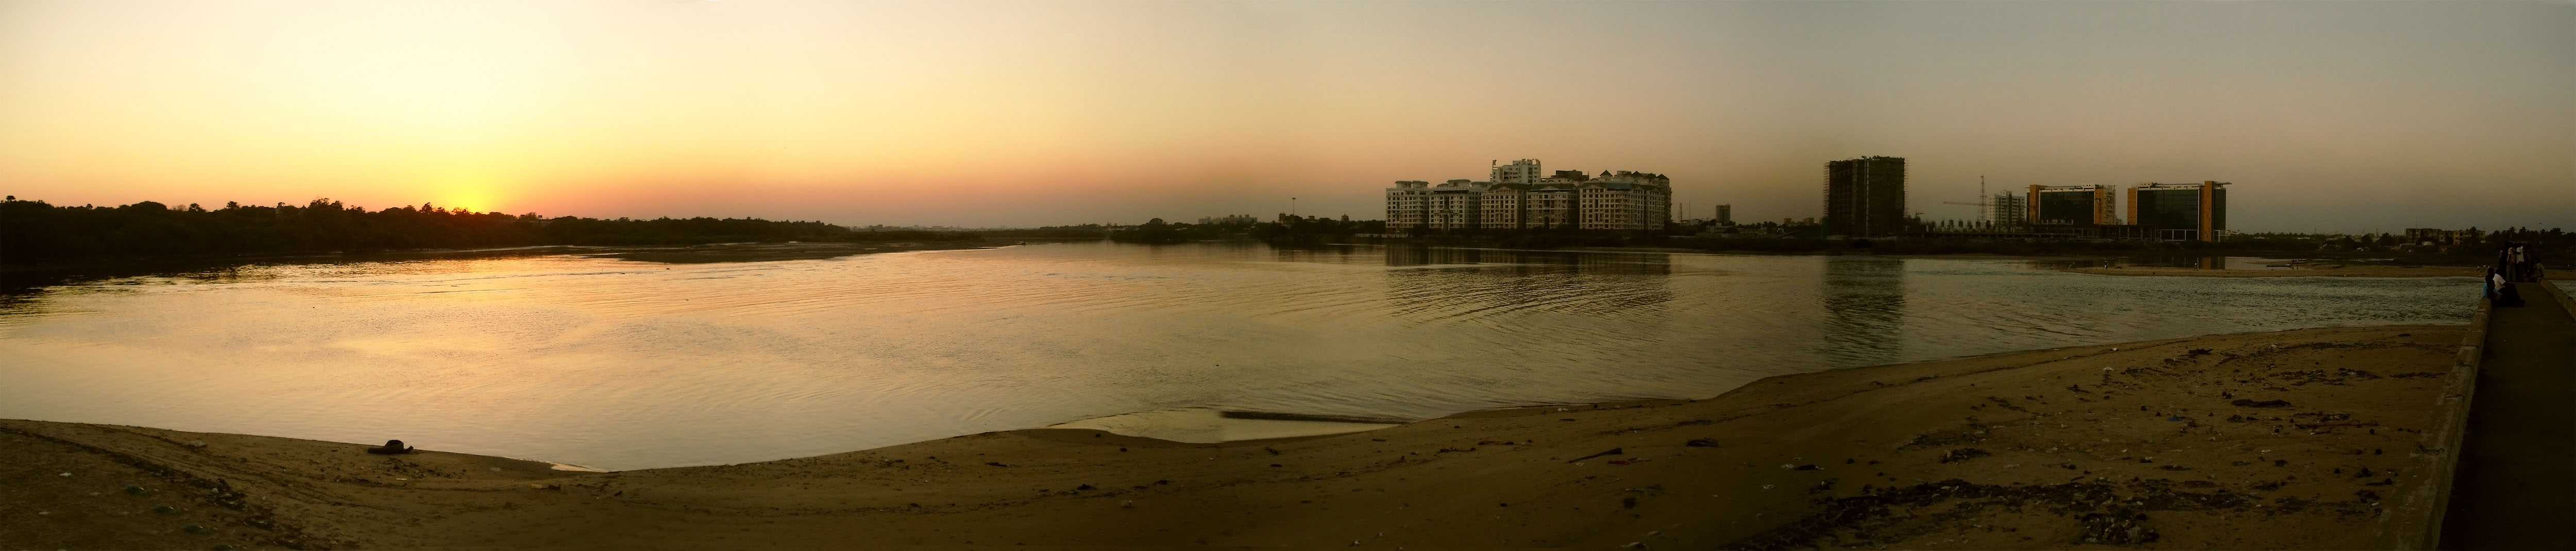 A view of the Adyar estuary from the broken bridge - Planemad | wikipedia